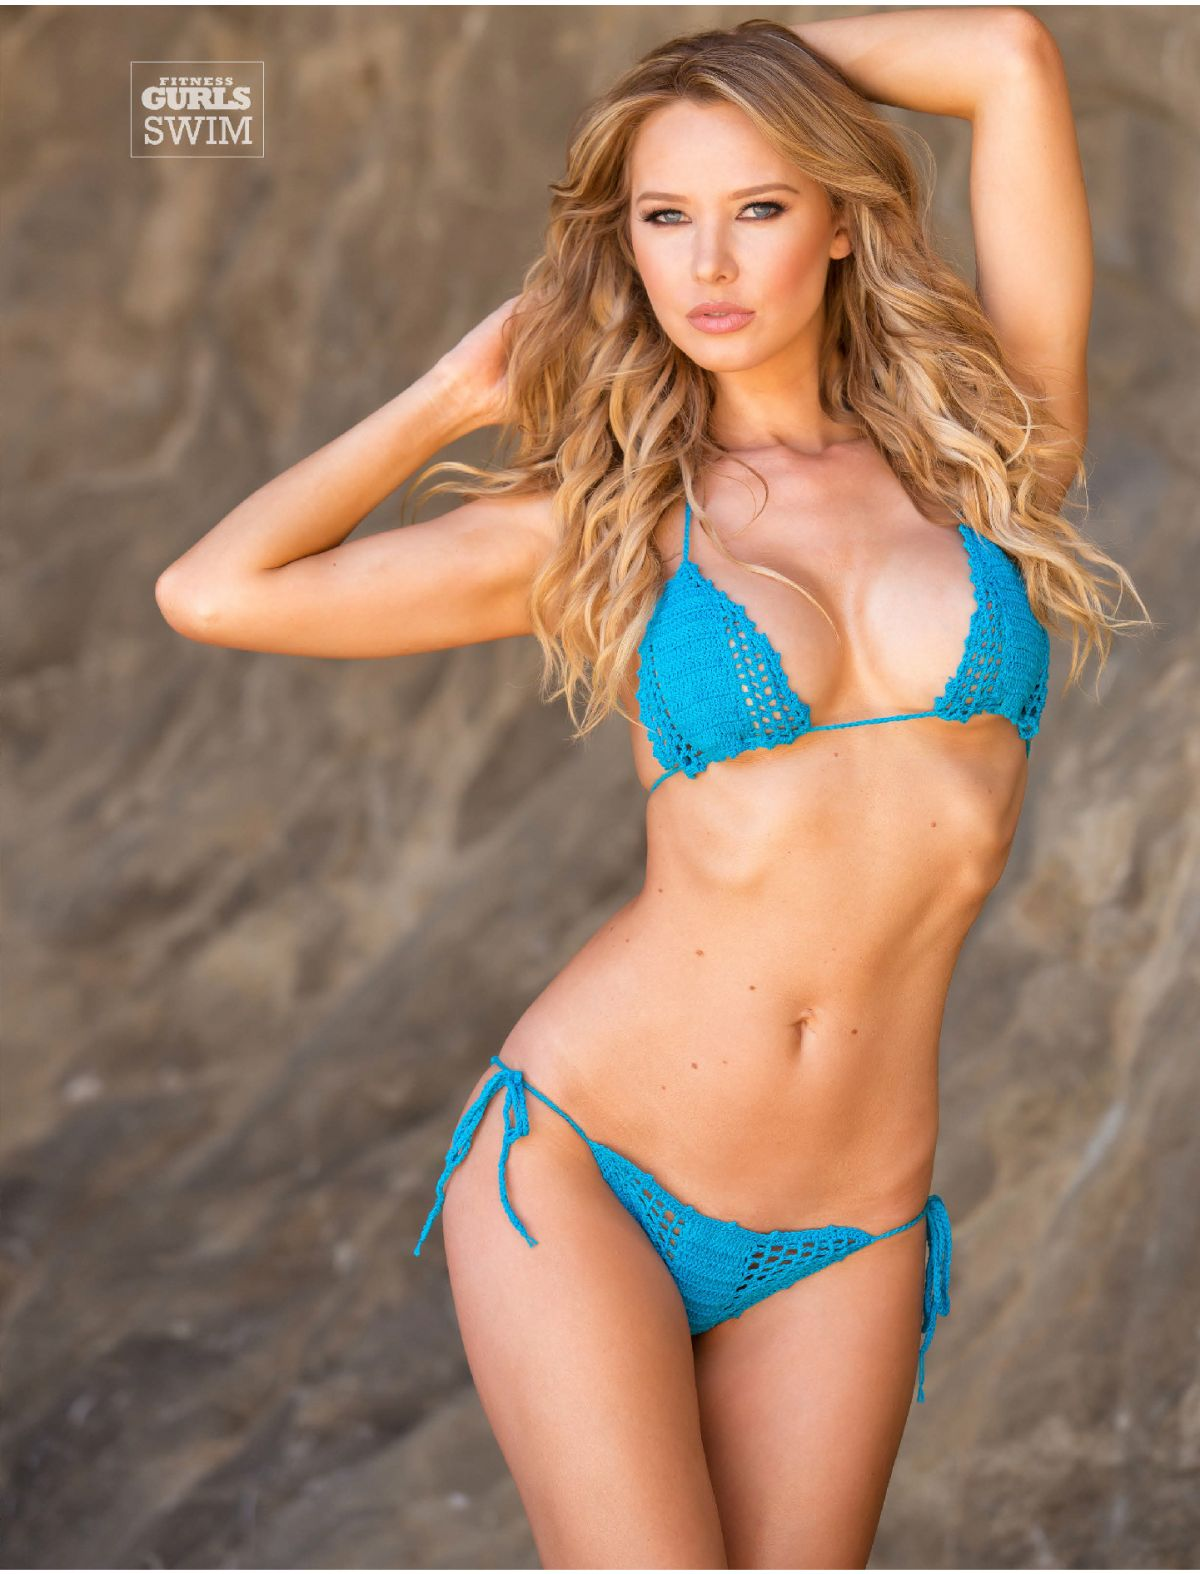 TIFFANY TOTH in Fitness Gurls Magazine, July 2014 Issue